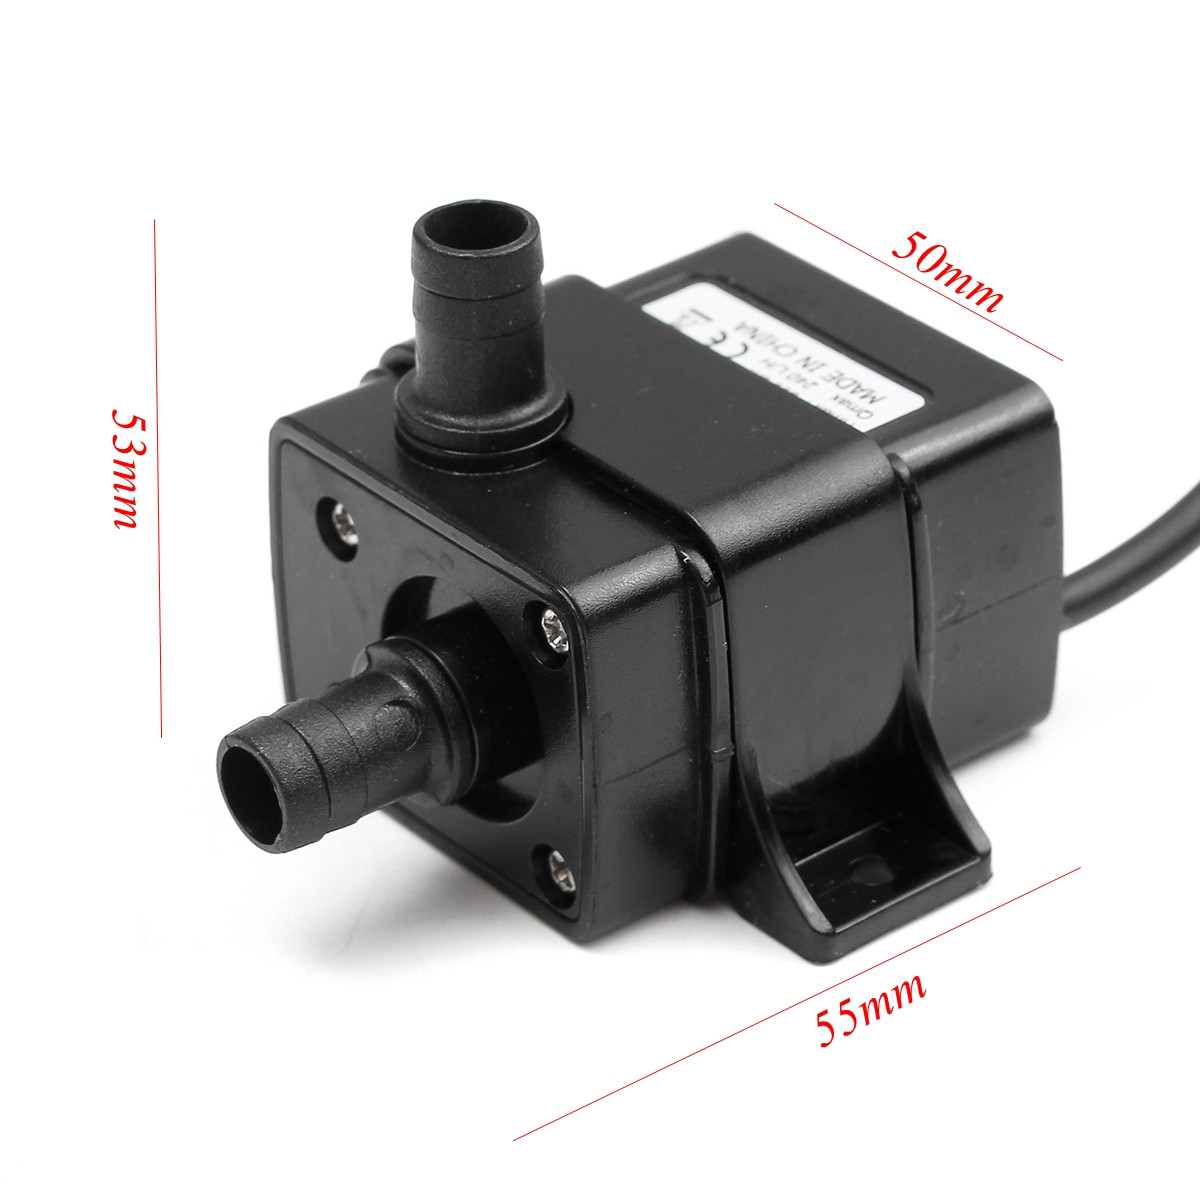 DC12V 4.8W Mini DC Brushless Garden Fountain Pump Hydrological Cycle Submersible Water Pump